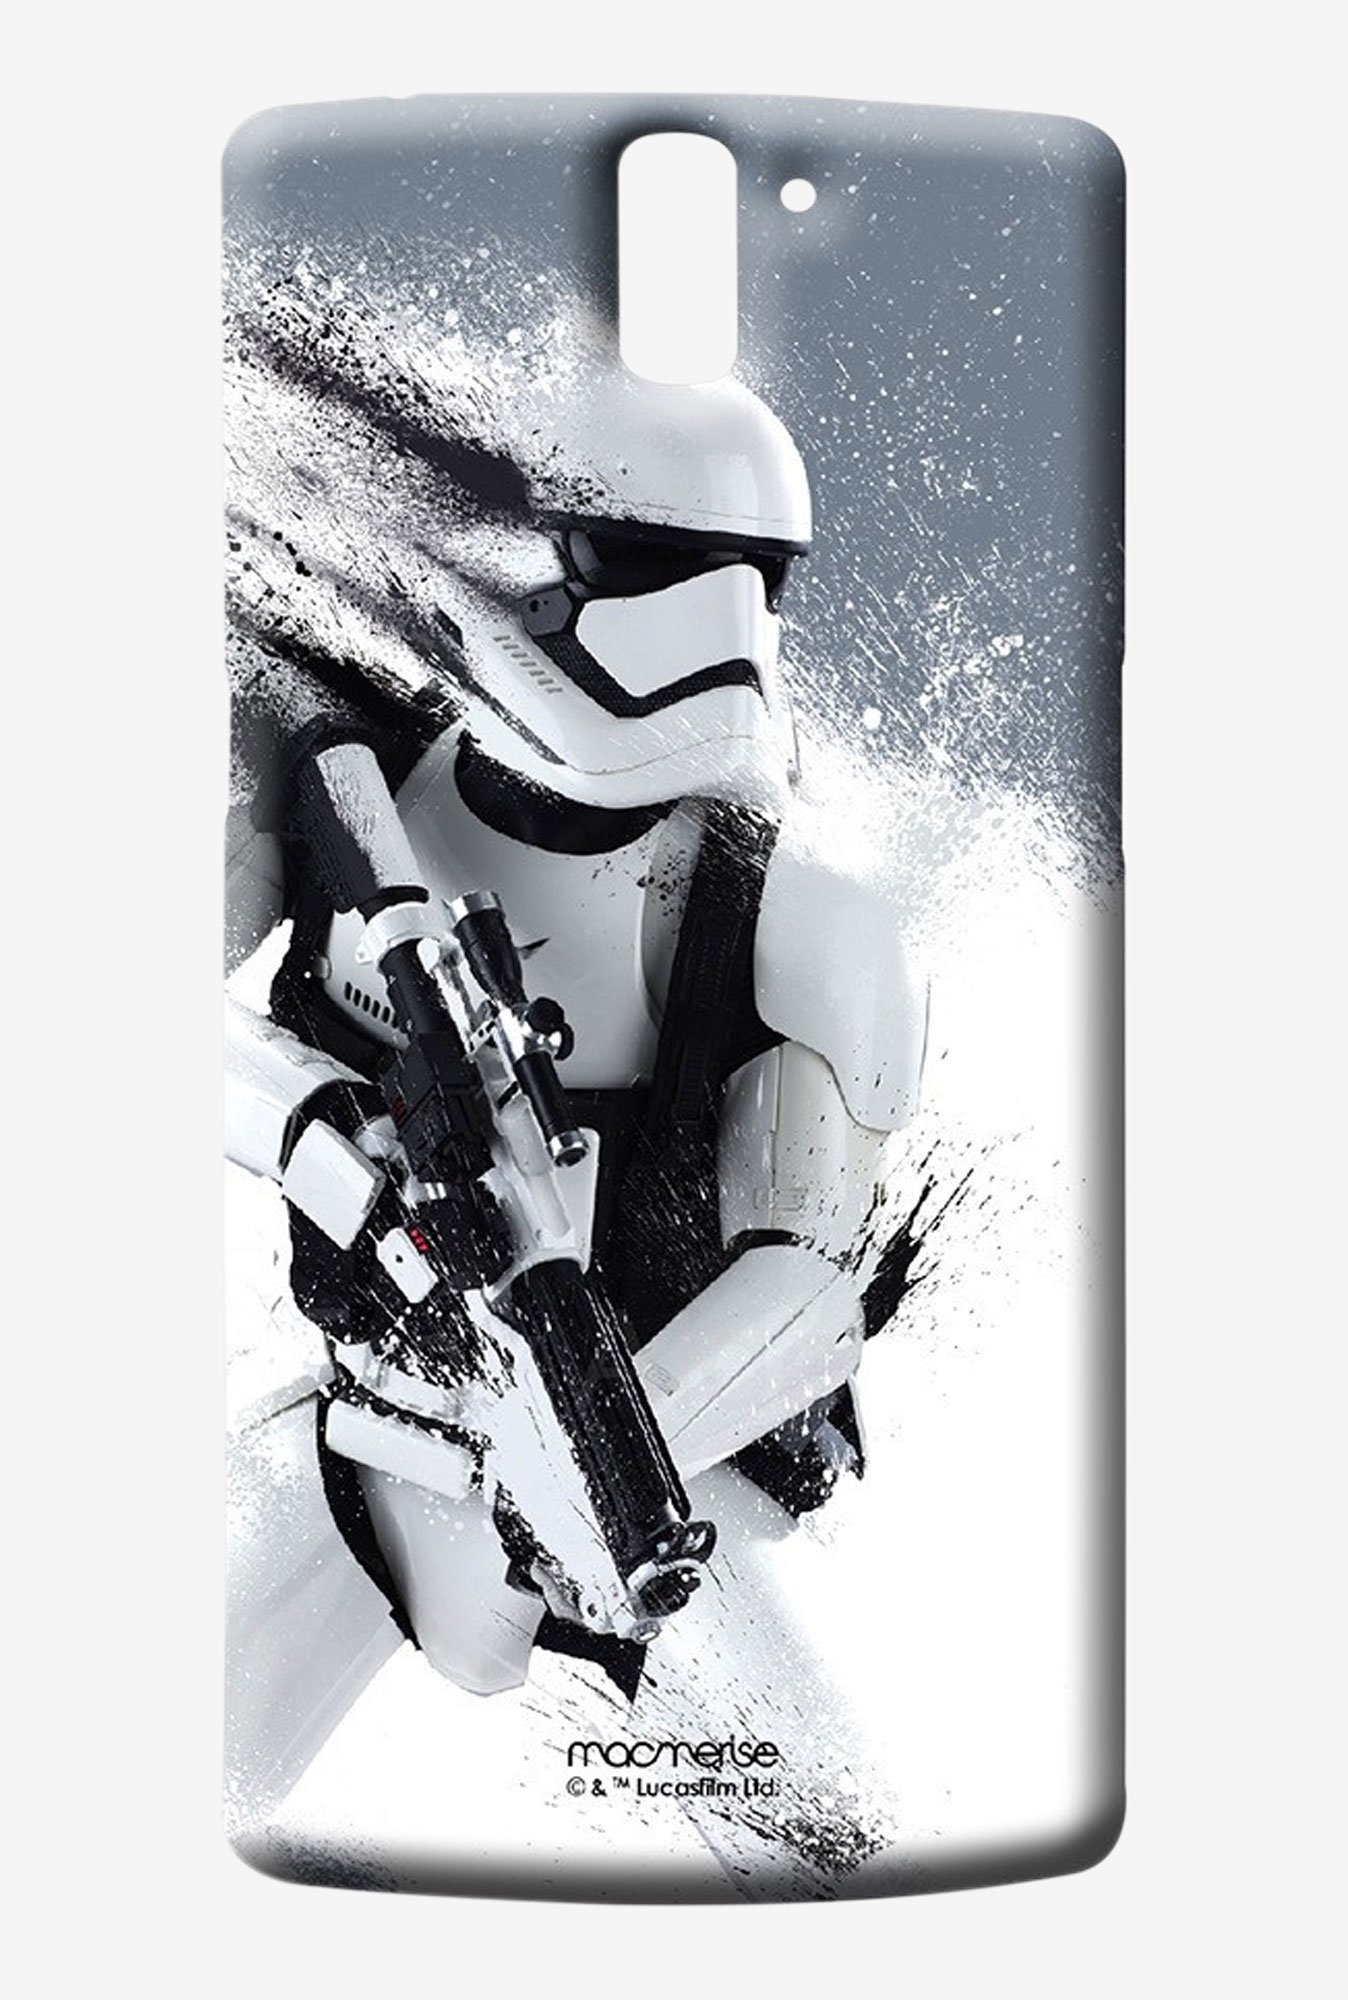 Macmerise Trooper Storm Sublime Case for Oneplus One